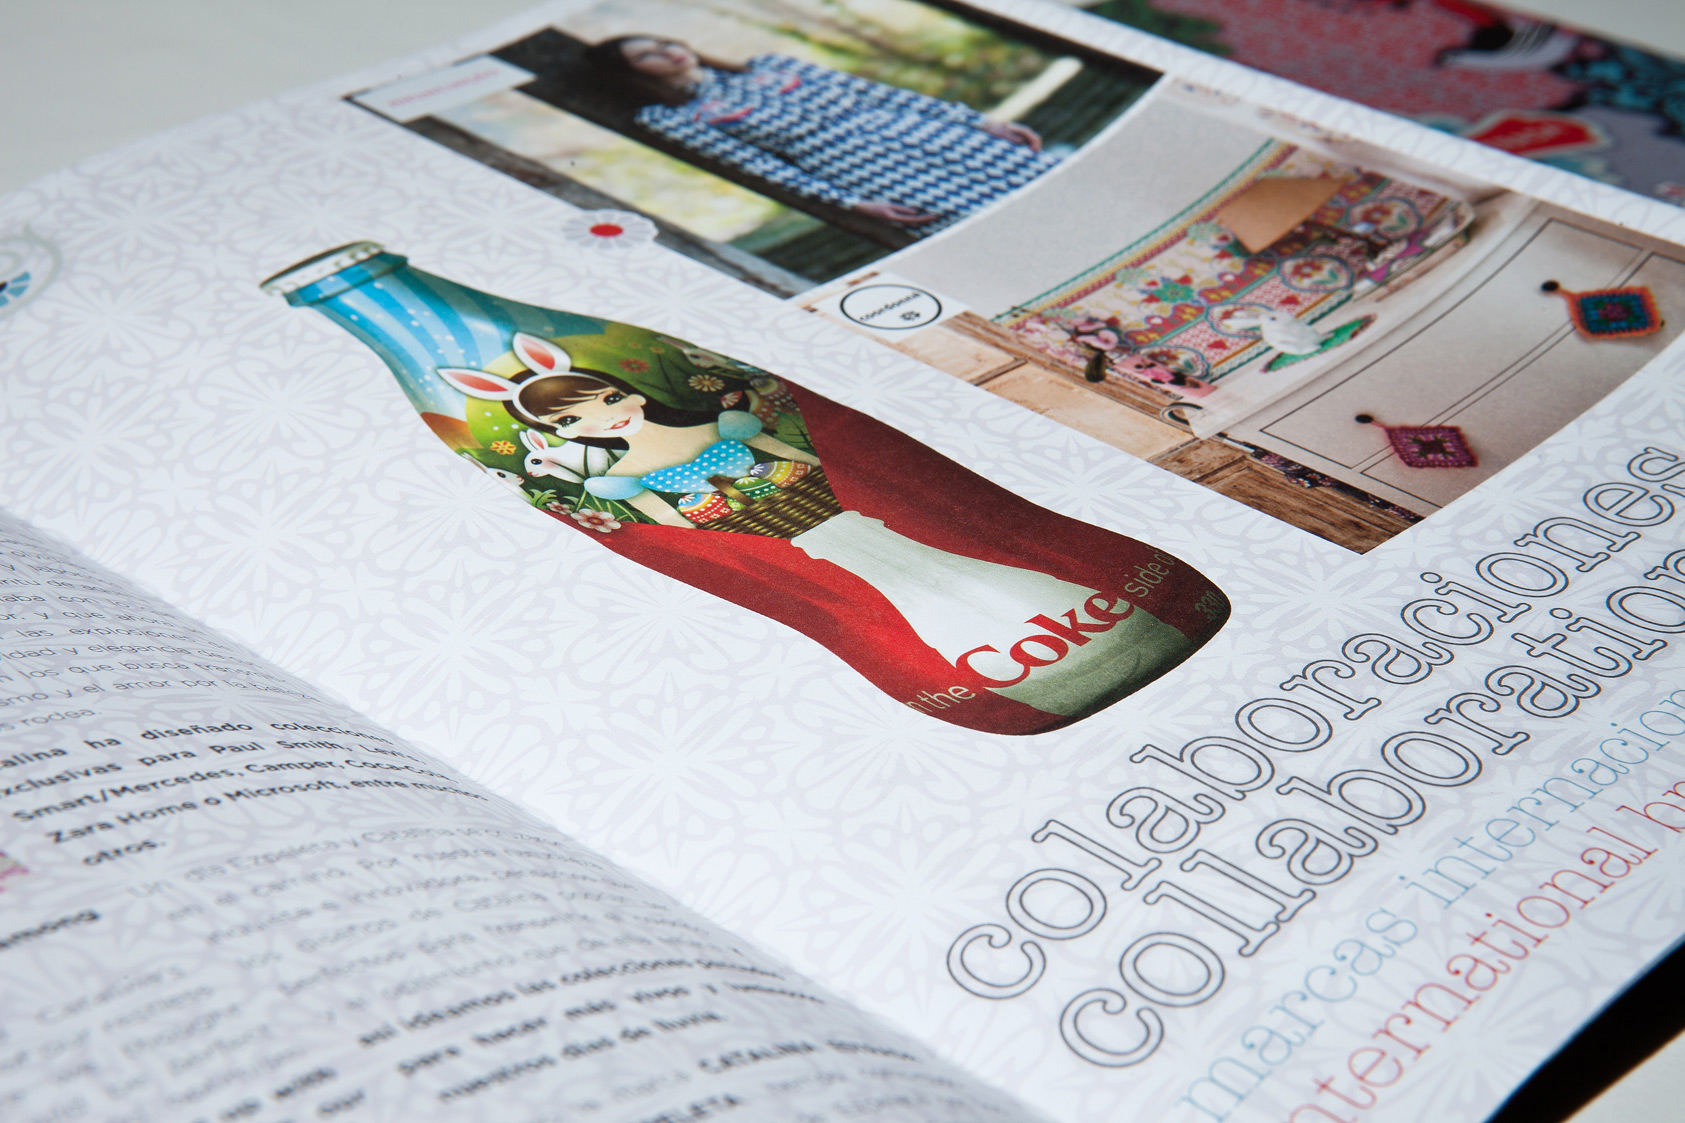 lombok_design_marketing_blog_ezpeleta_catalogos_3